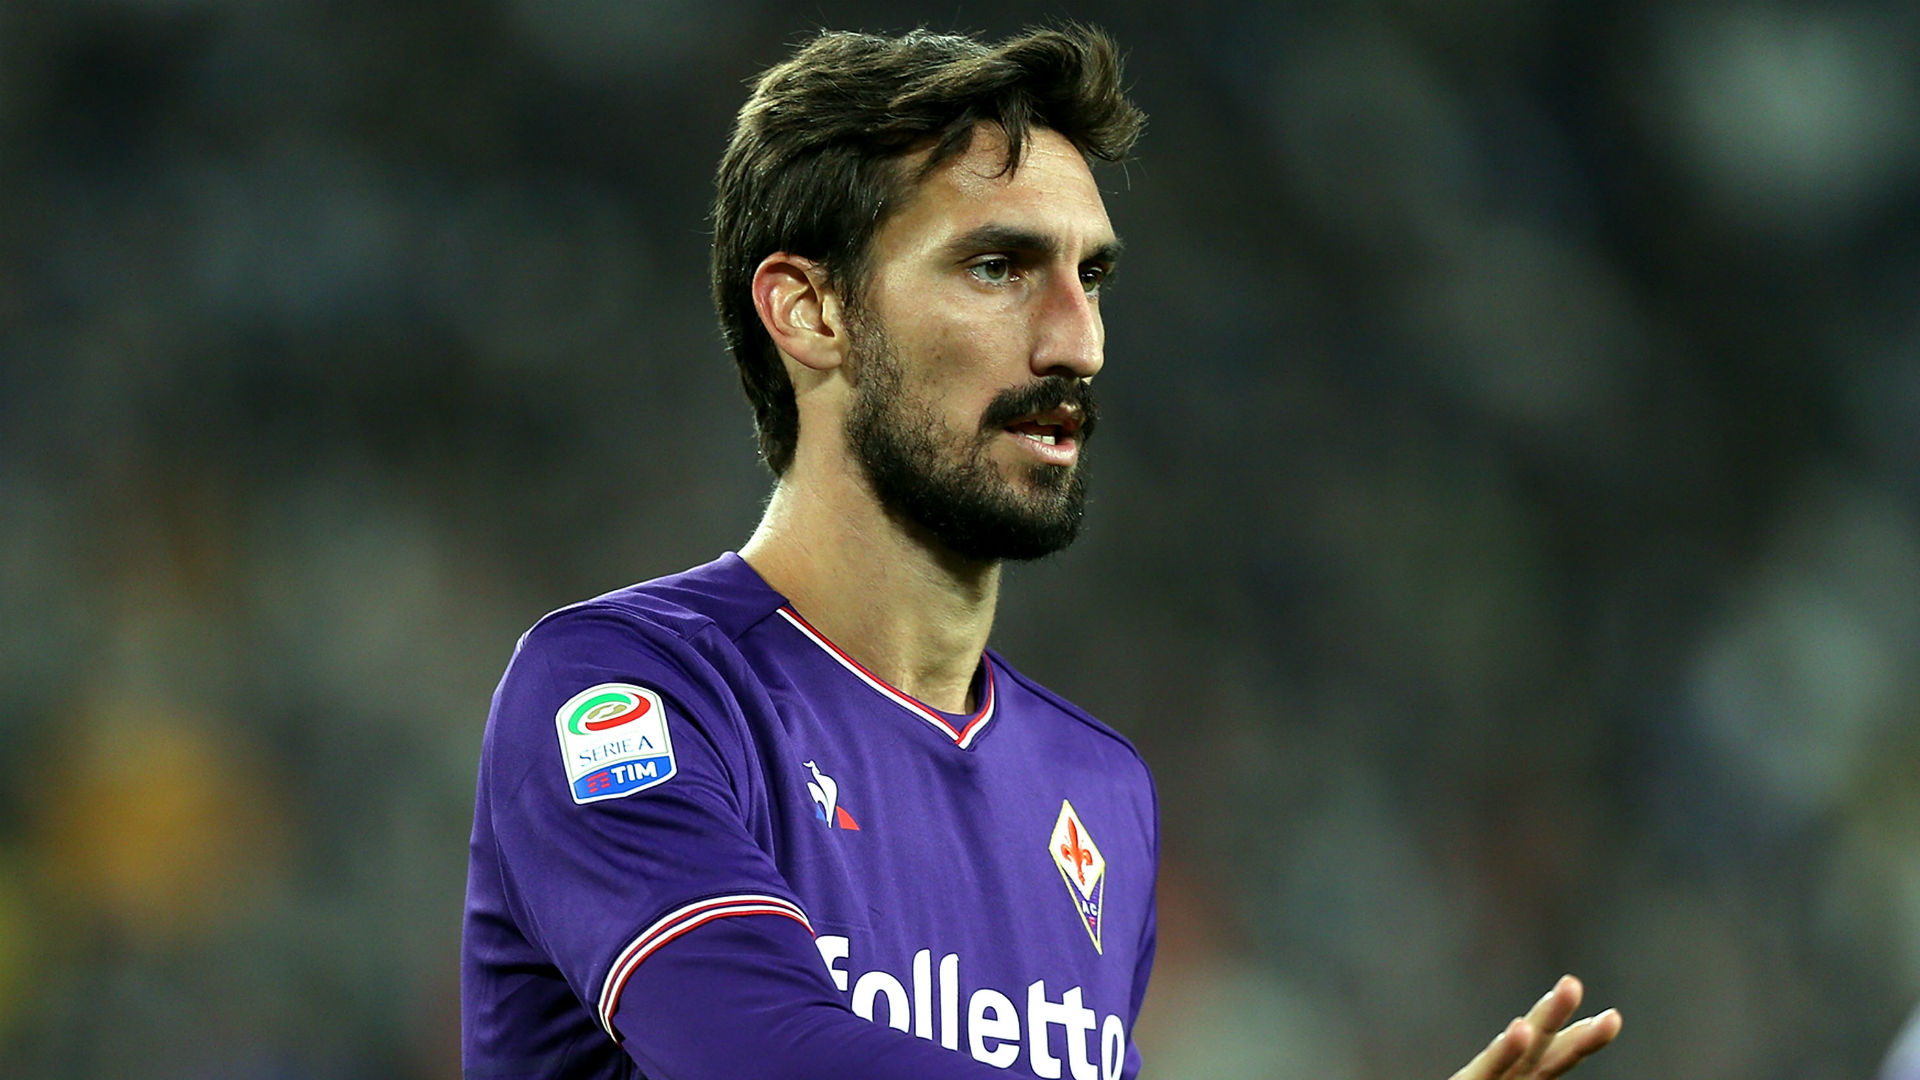 Fiorentina have changed their logo in honour of fallen captain Davide Astori